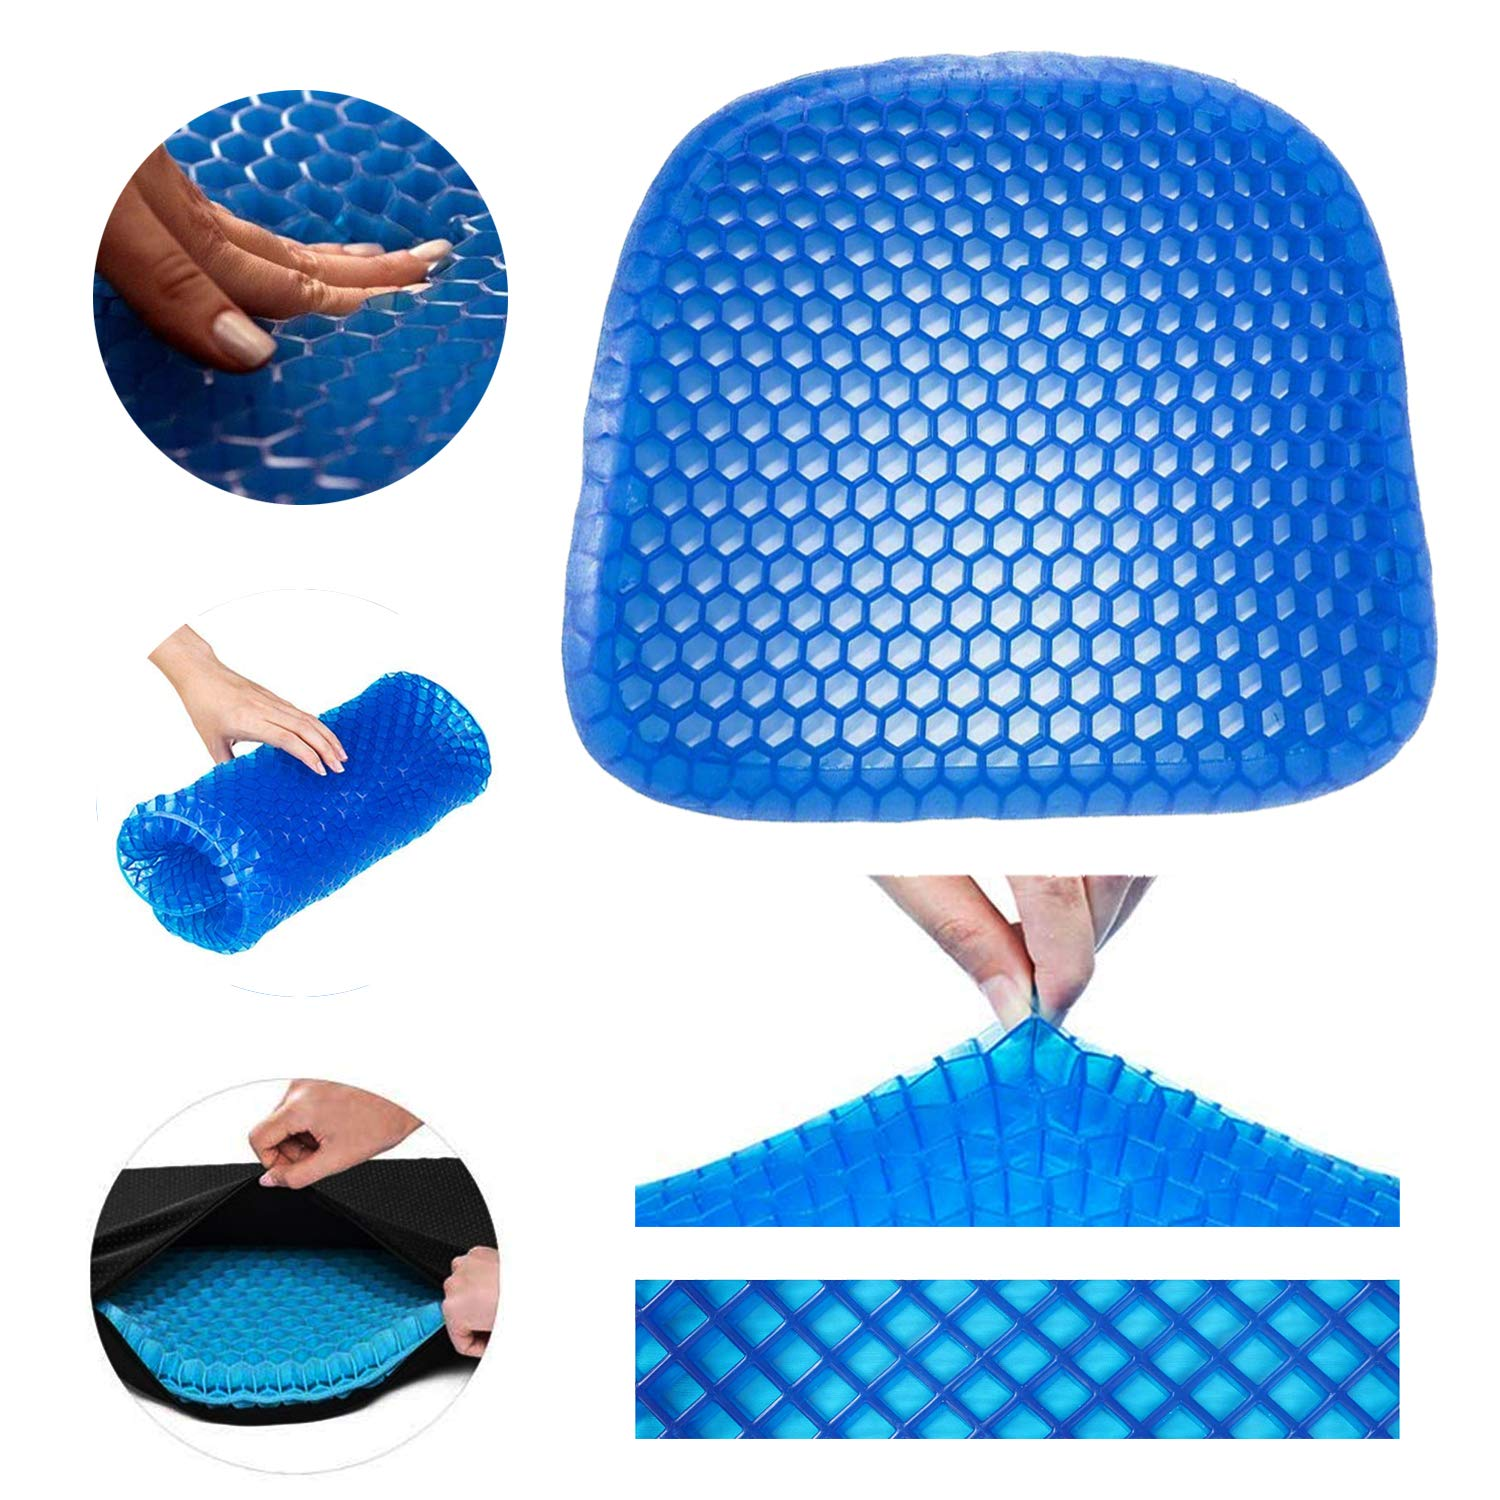 BICMTE Gel Seat Cushion - Durable, Portable Office Chair Car Seat Cushion Supports Lower Back, Tailbone, Spine, Hips   Promotes Circulation & Good Sitting Posture (Egg Sitter Seat Cushion)